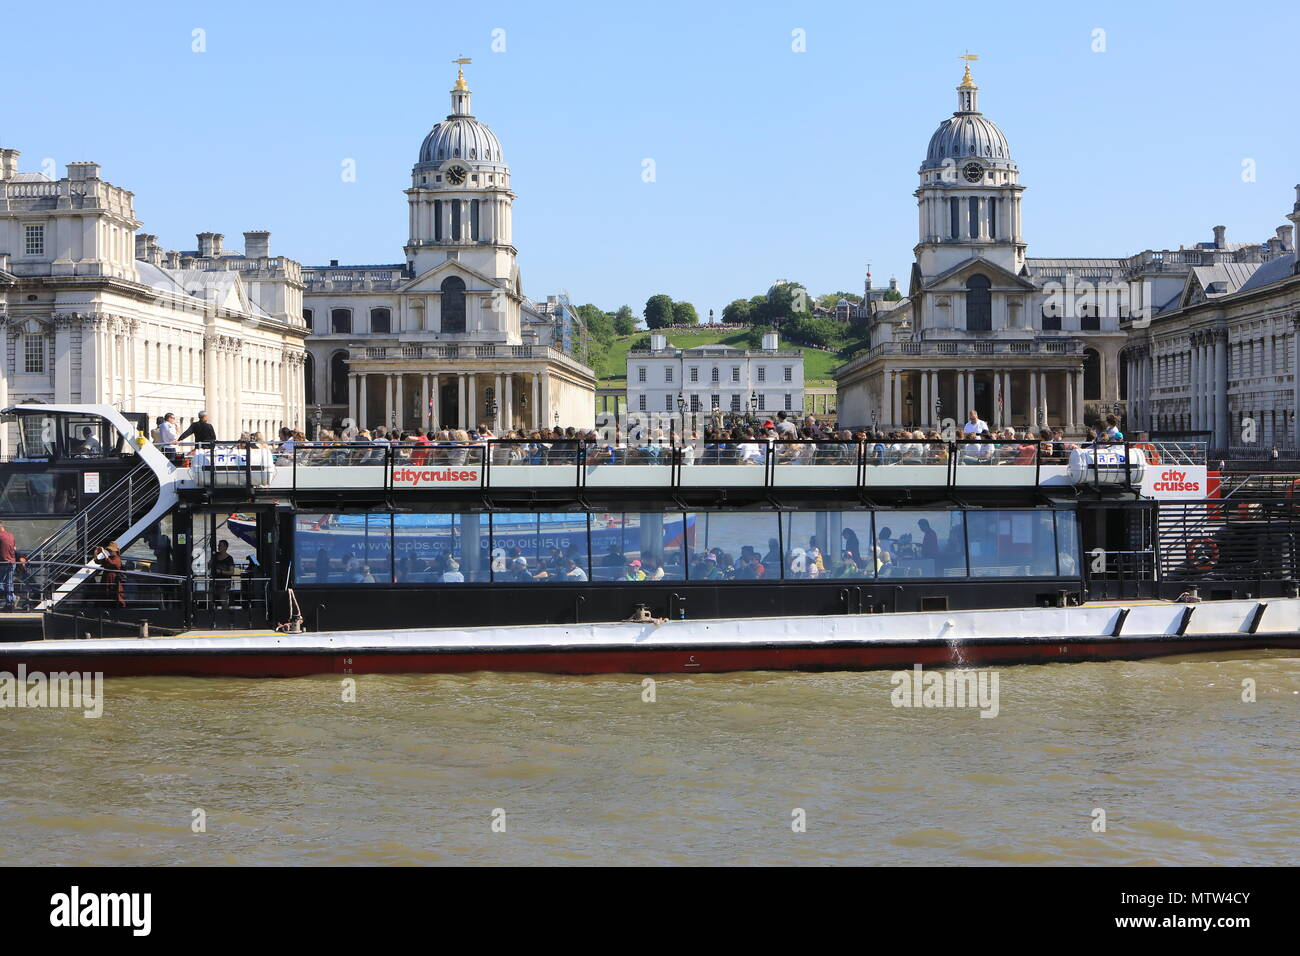 River Thames cruise boat in front of the Old Royal Naval College in hsitoric Greenwich, SE London, Emgland, UK - Stock Image